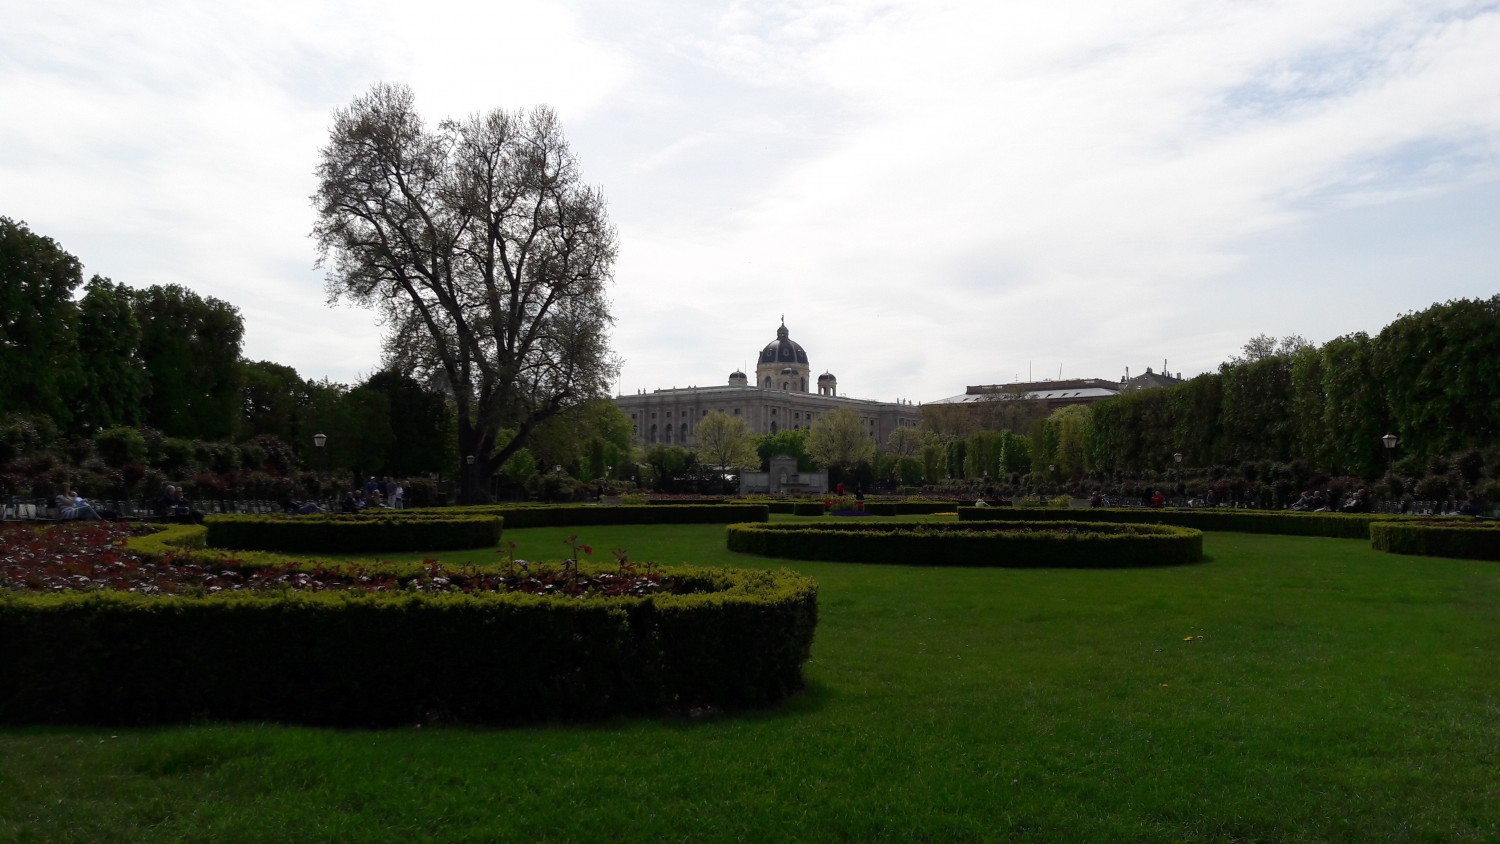 The garden in front of the National Library, which can be seen in the background